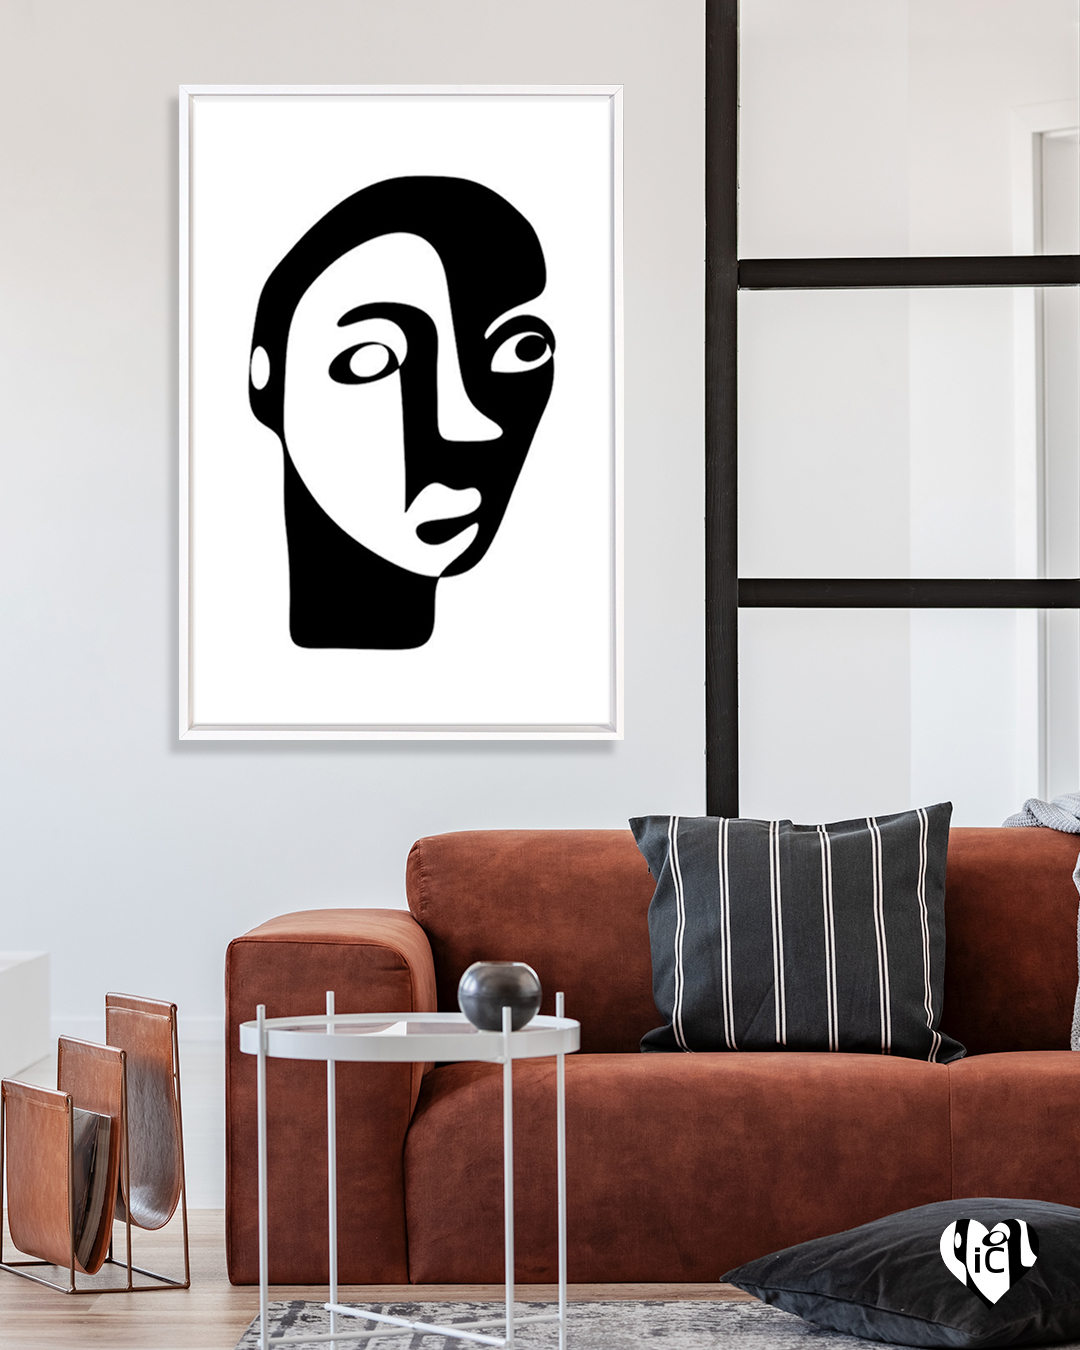 Minimalist portrait illustration of a shadowed face in a white frame on a wall in a room with a burgundy sofa and black and white striped throw pillow